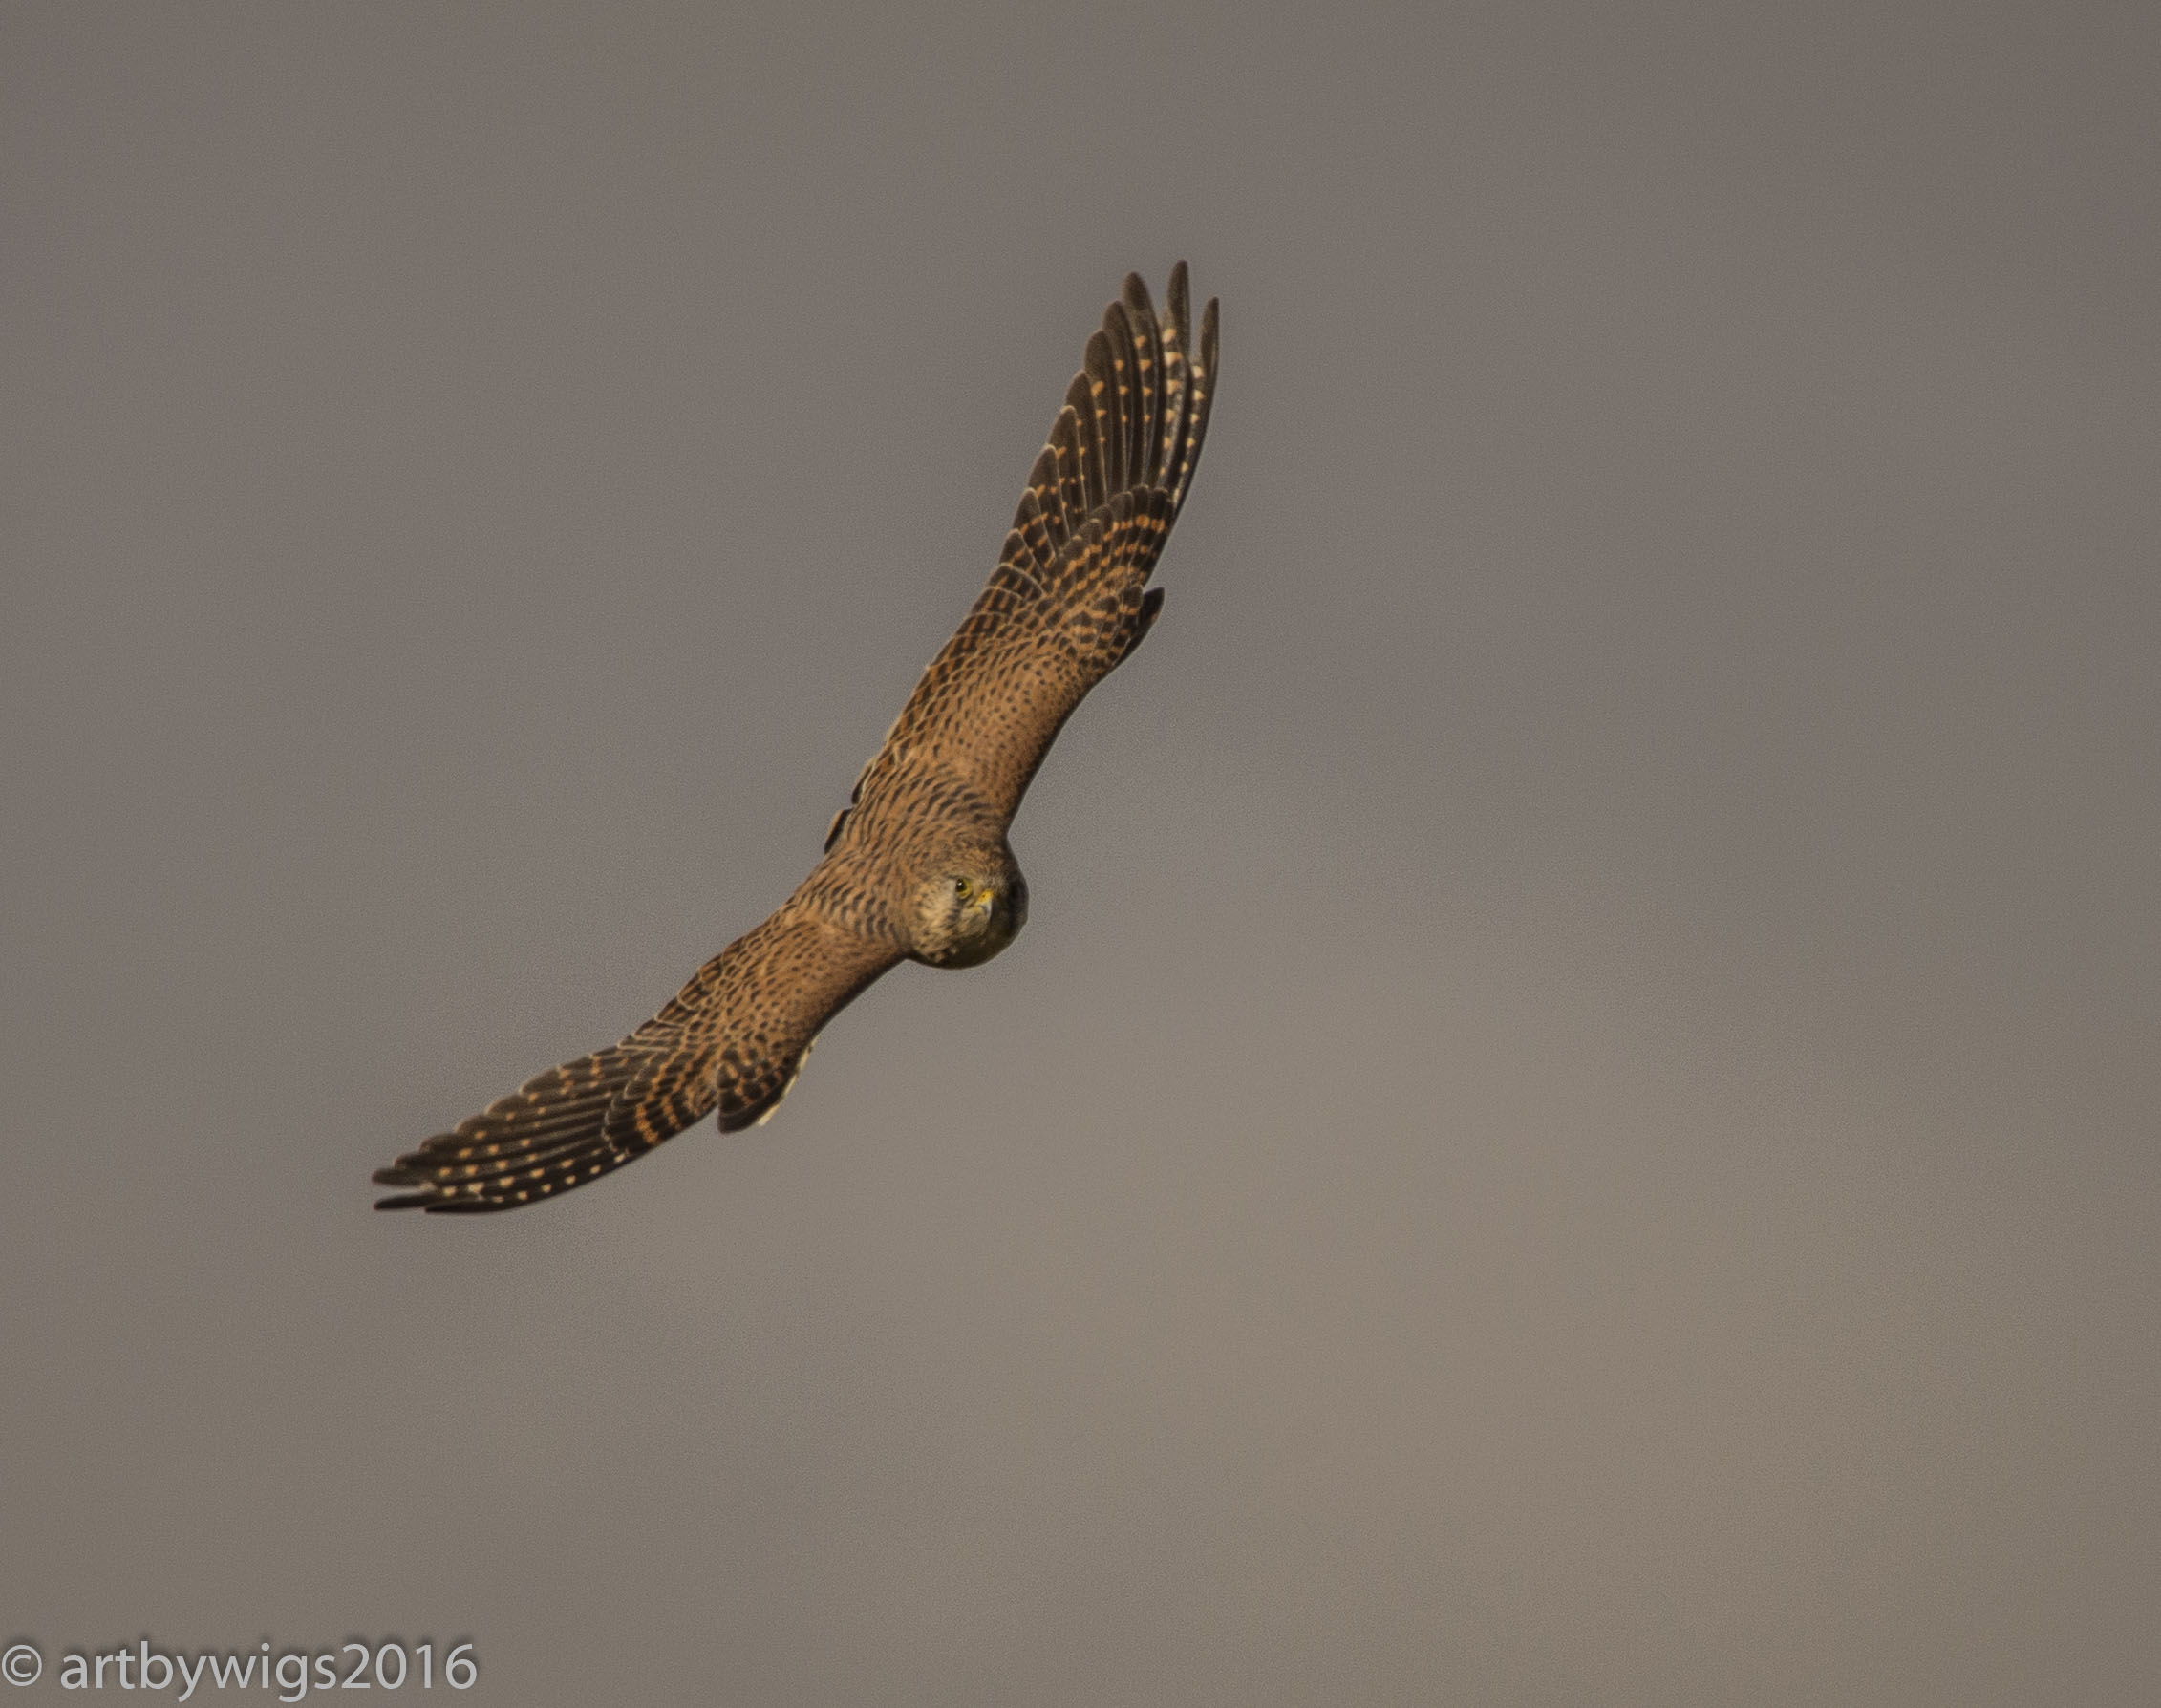 Kestrel petworth